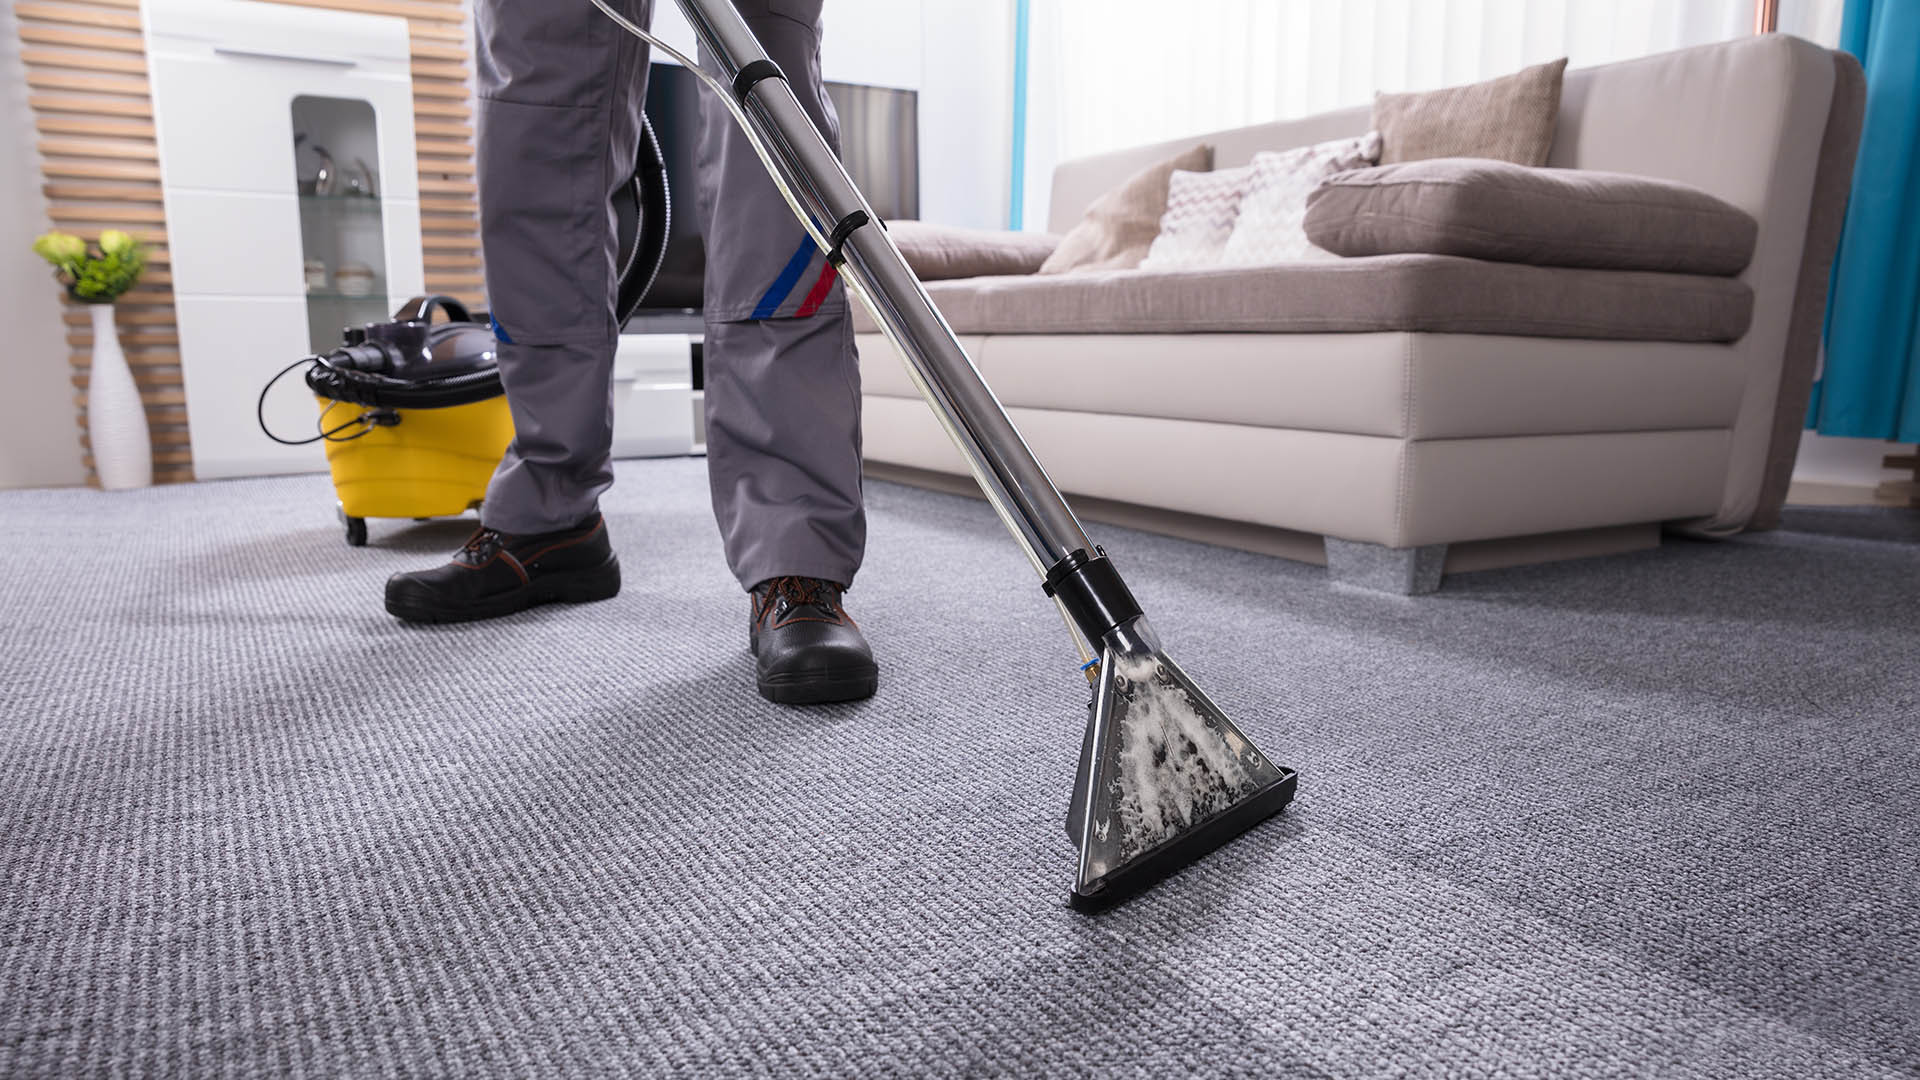 Carpet Cleaners in East Central Florida, FL | Craig's Carpet, Tile & Grout  Cleaning (321) 444-8091